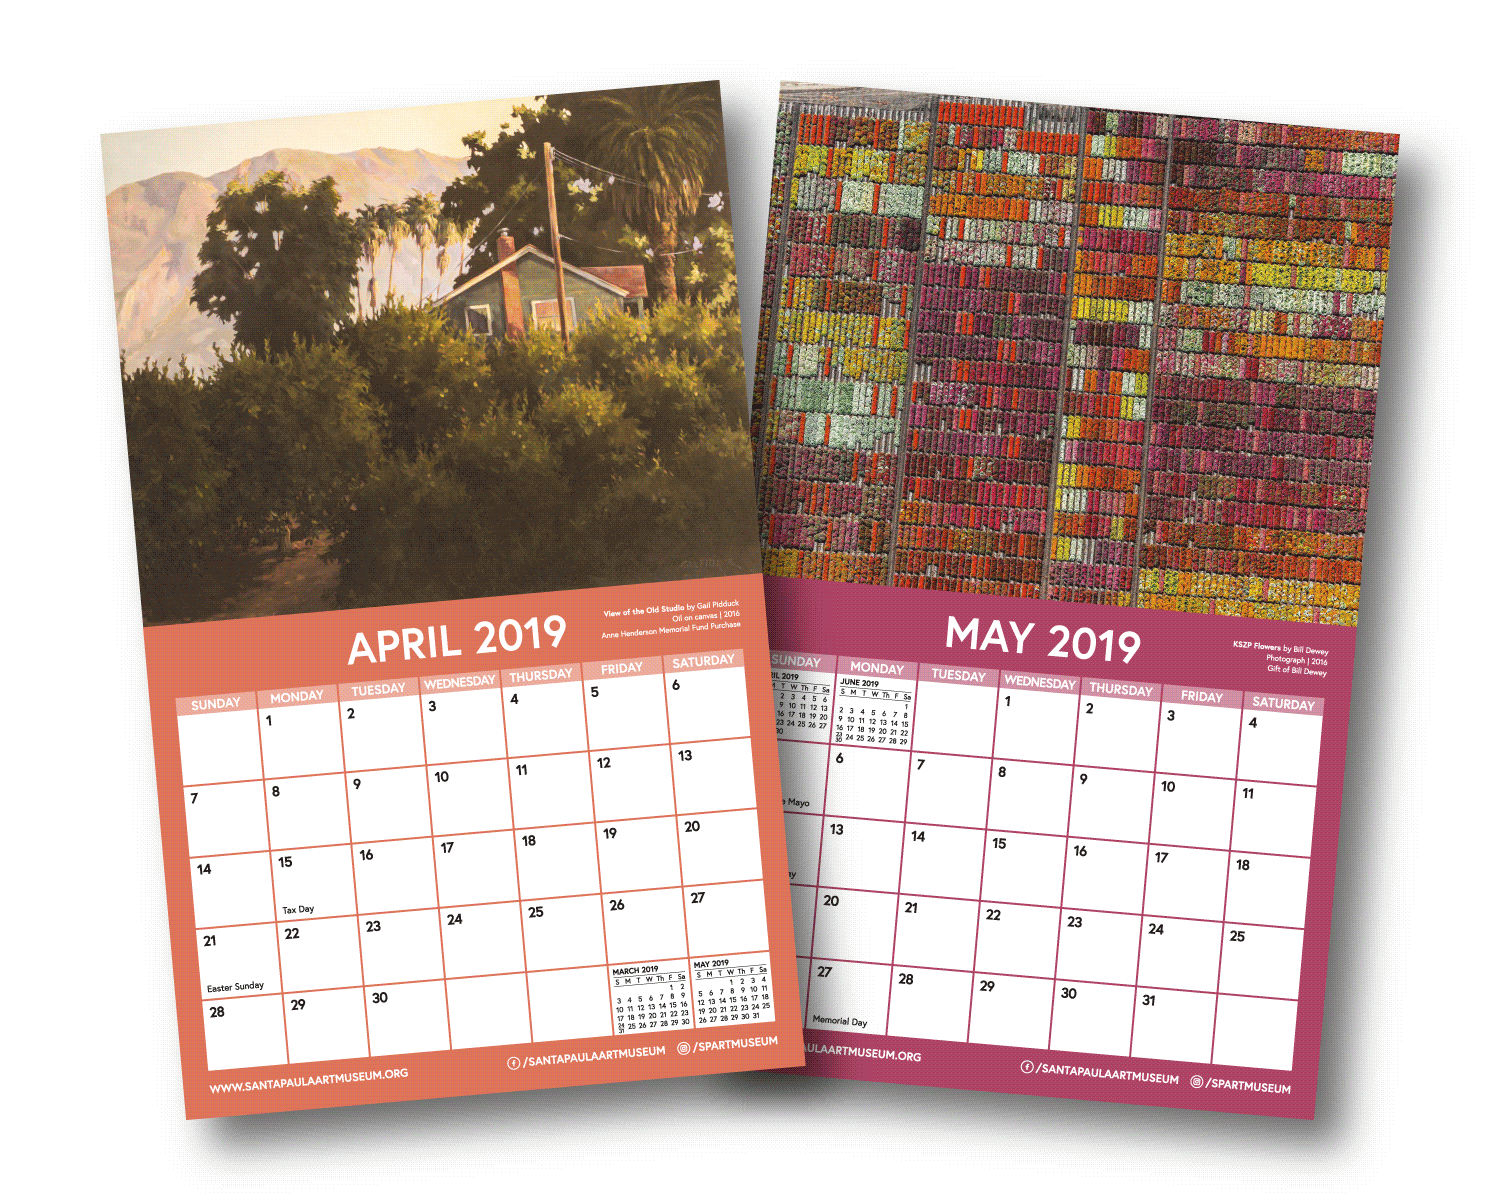 calendar-product-image.png